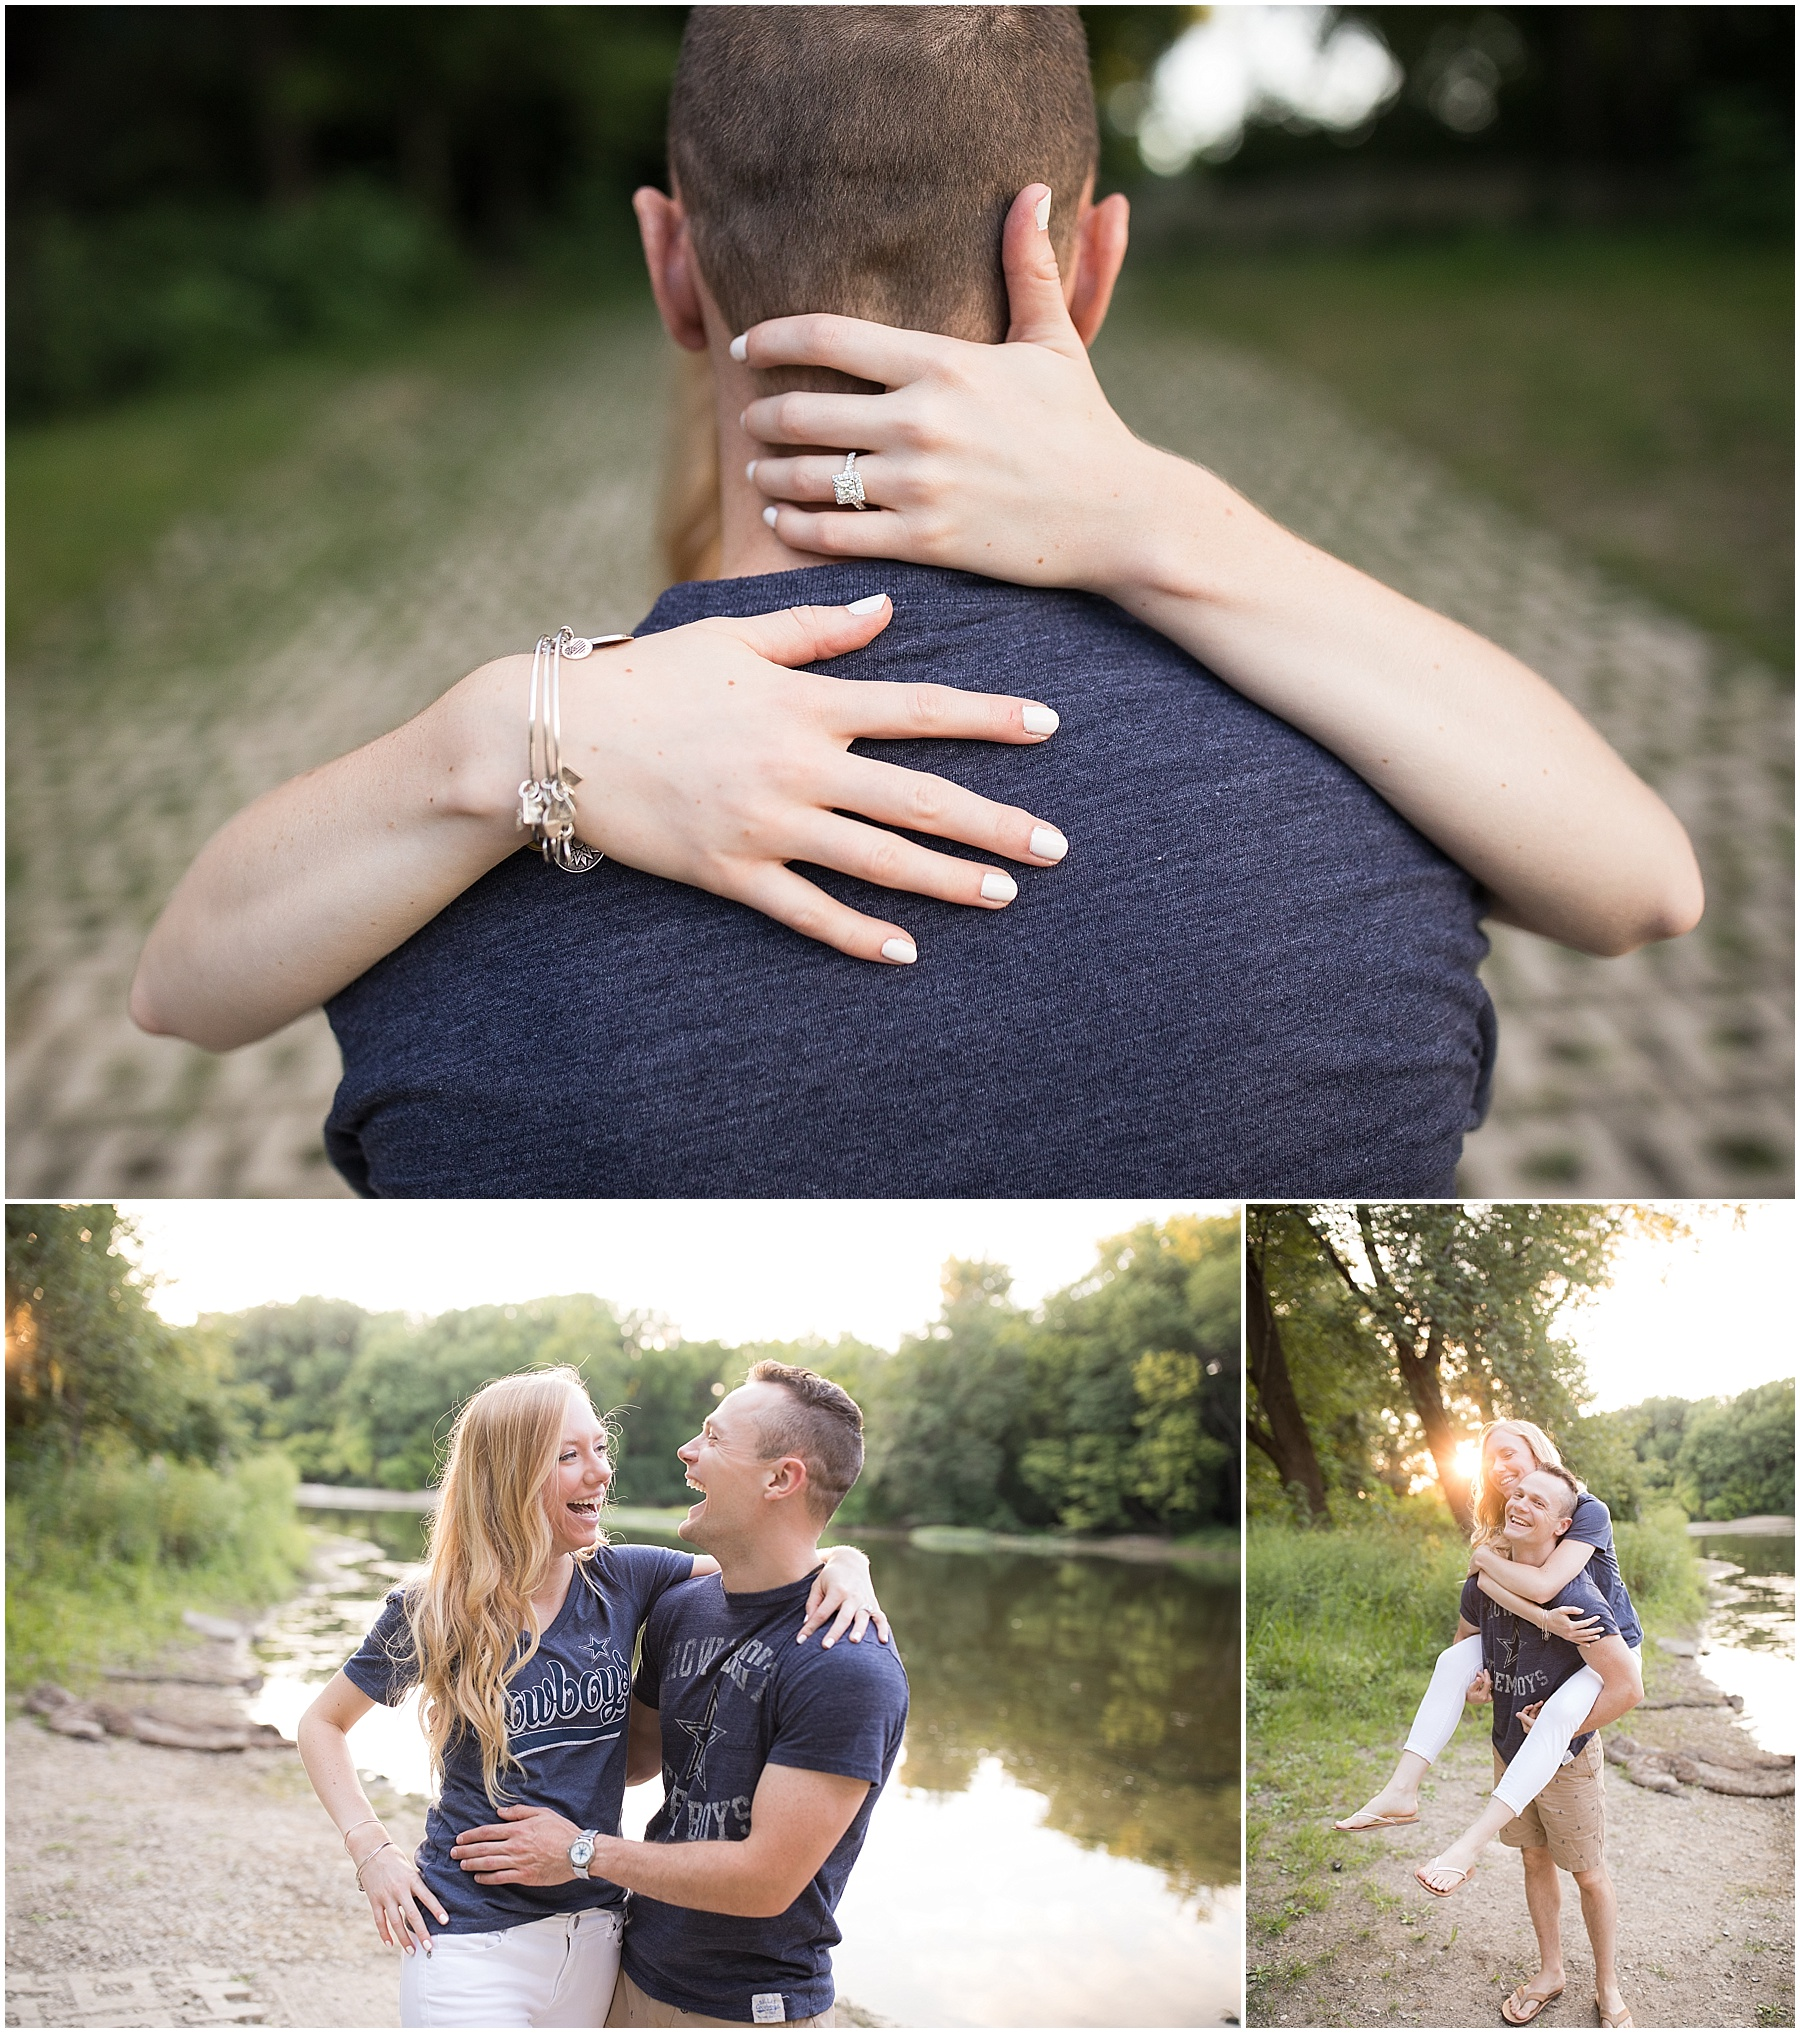 Love the one whom makes your laugh. Indianapolis Engagement Photographer. Raindancer Studios